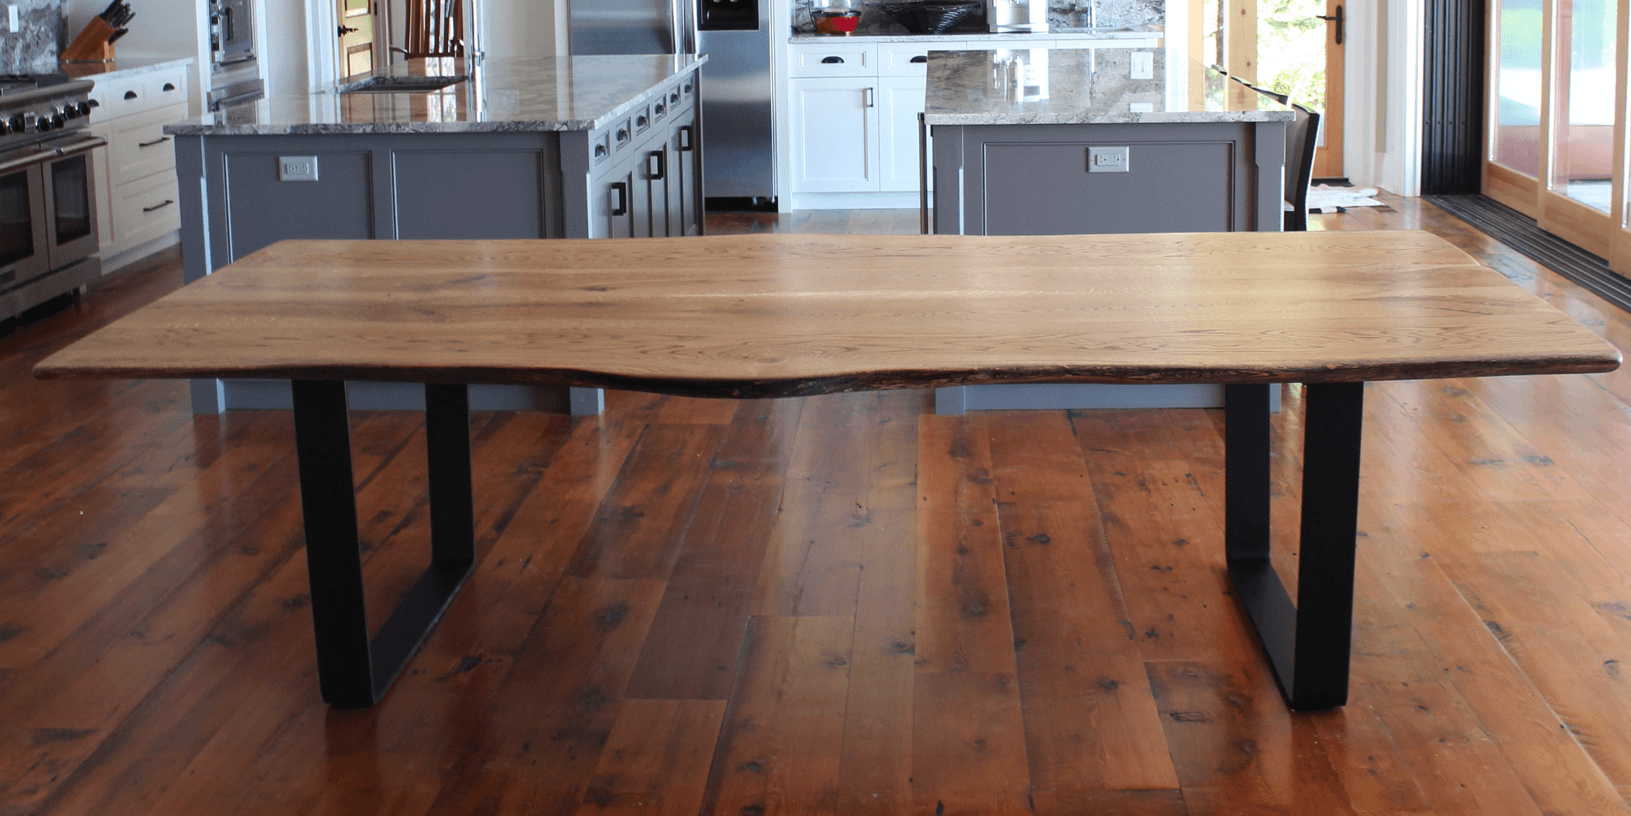 Most Recently Released Walnut Finish Live Edge Wood Contemporary Dining Tables Within Home – Living Wood Design Toronto & Muskoka Ontario Canada (View 14 of 30)